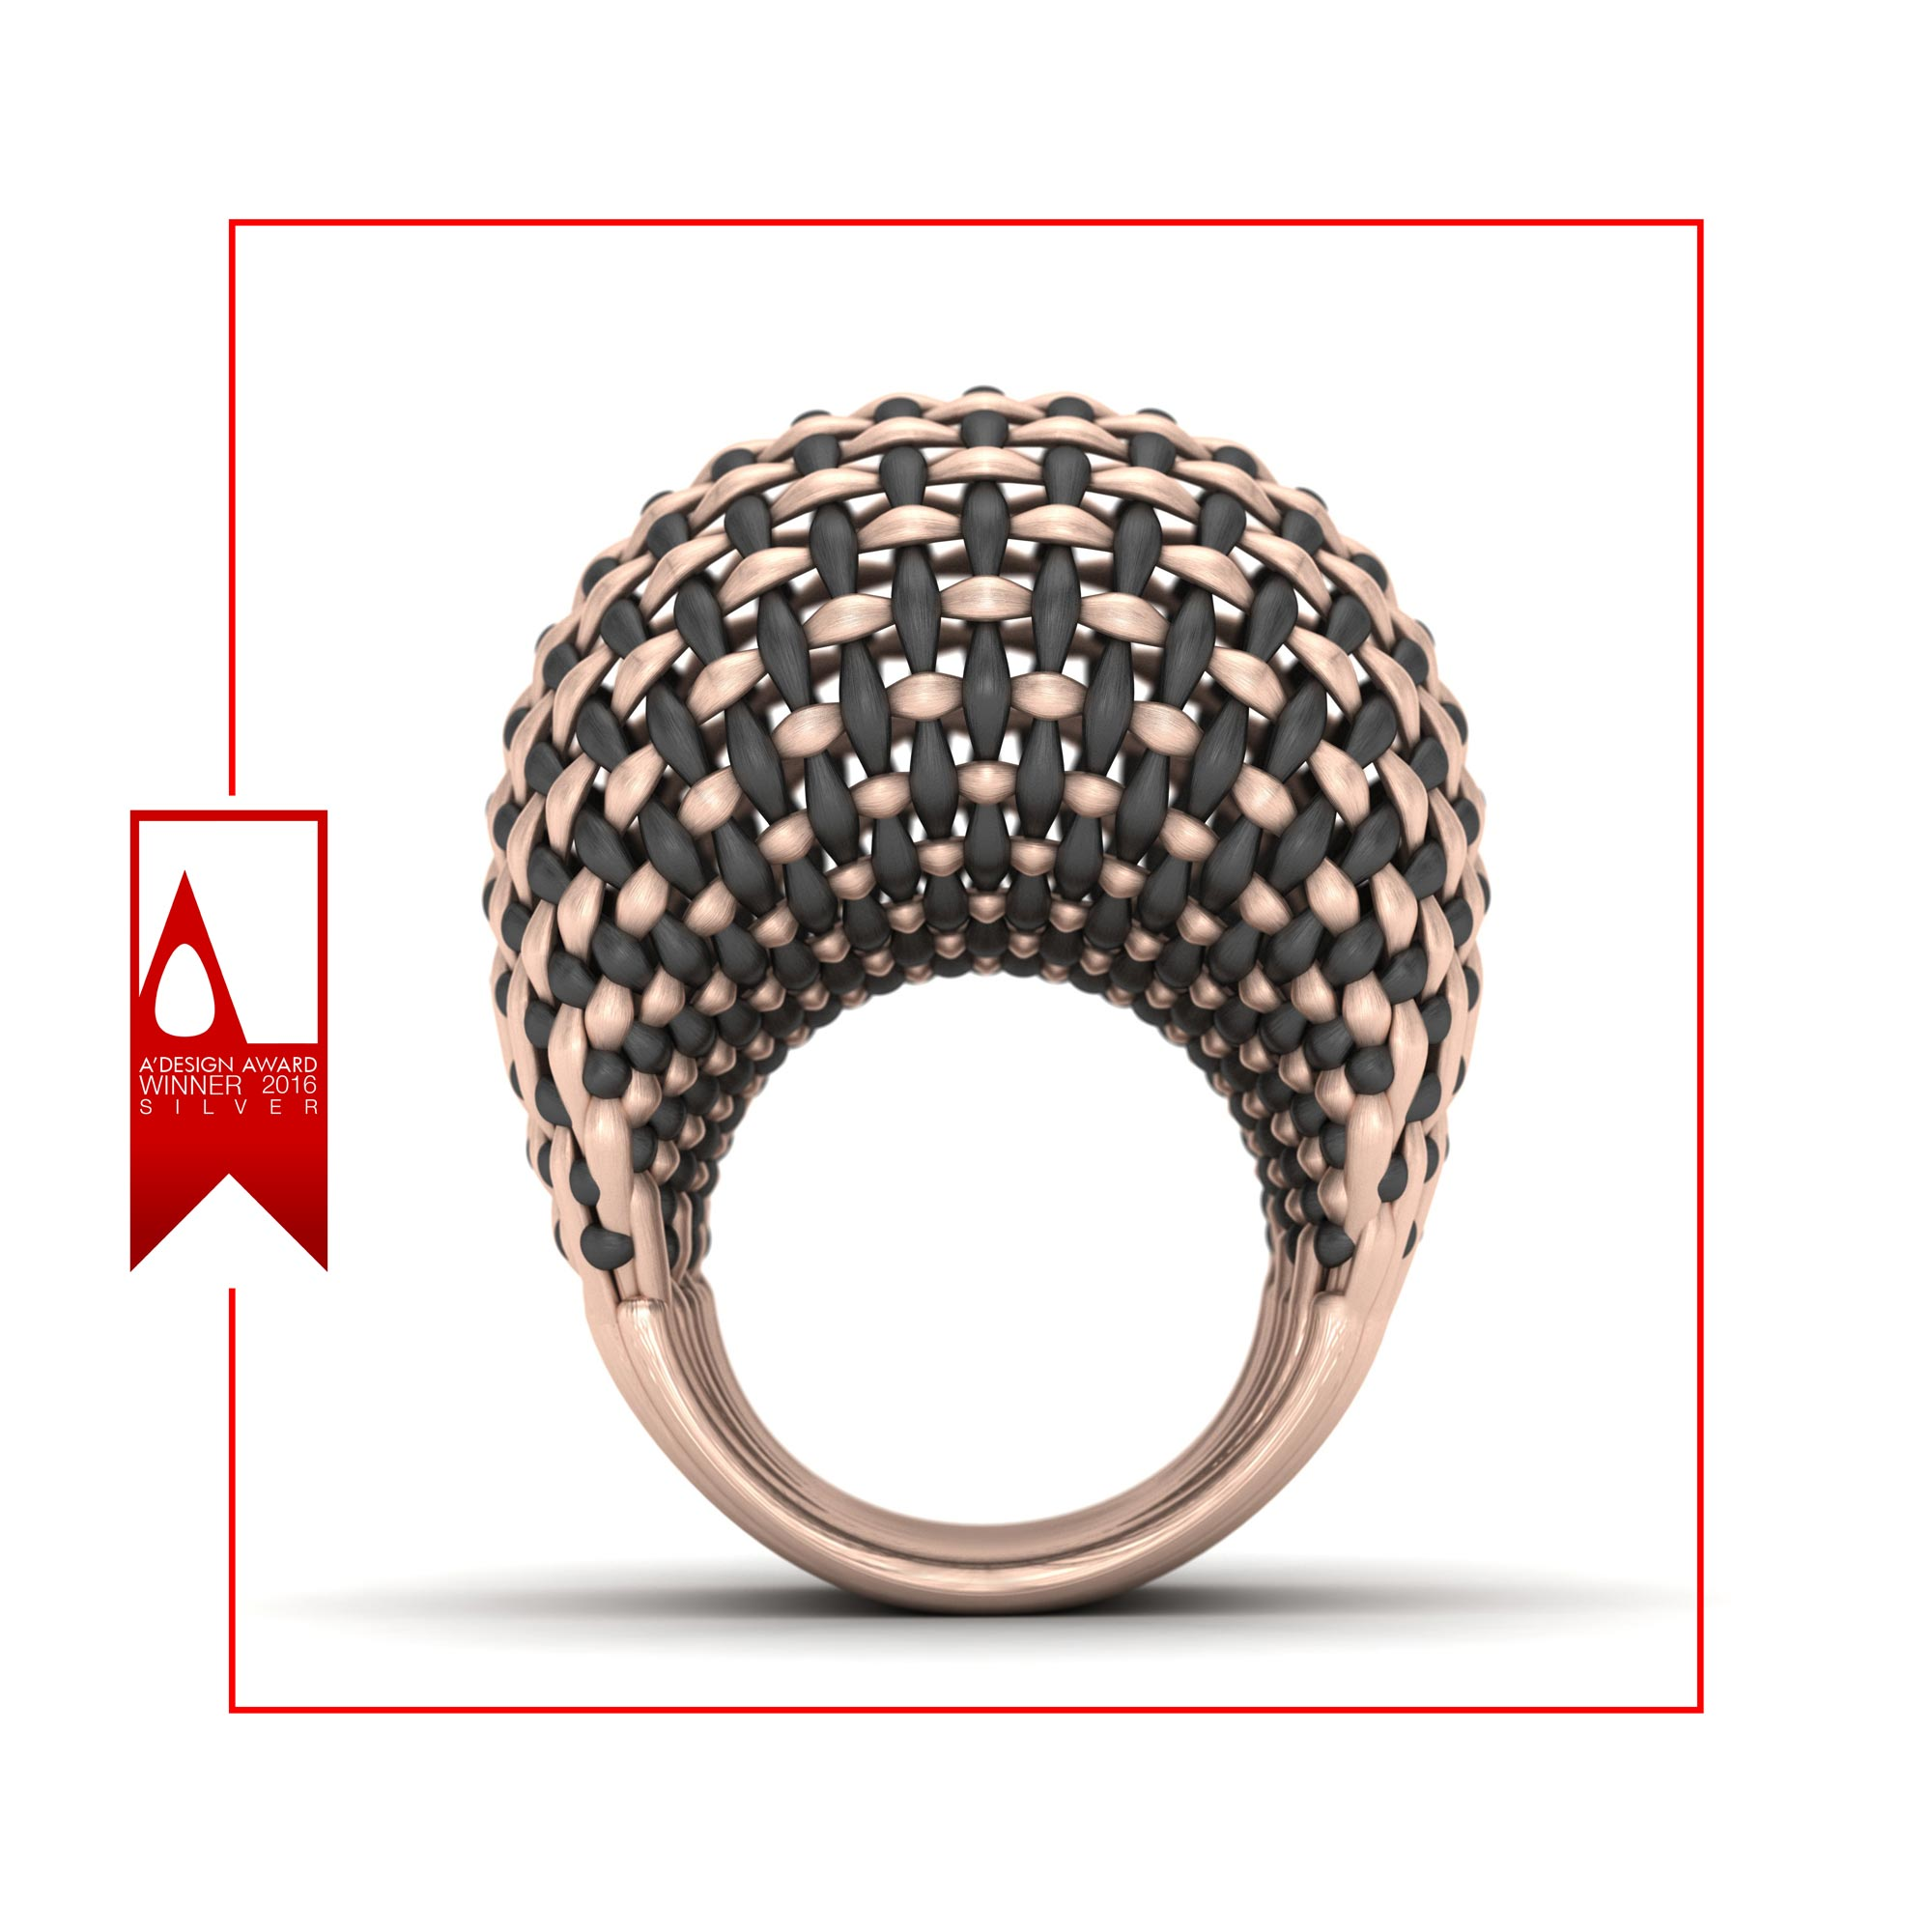 Interwoven Gold Ring,seyed mohammad morta